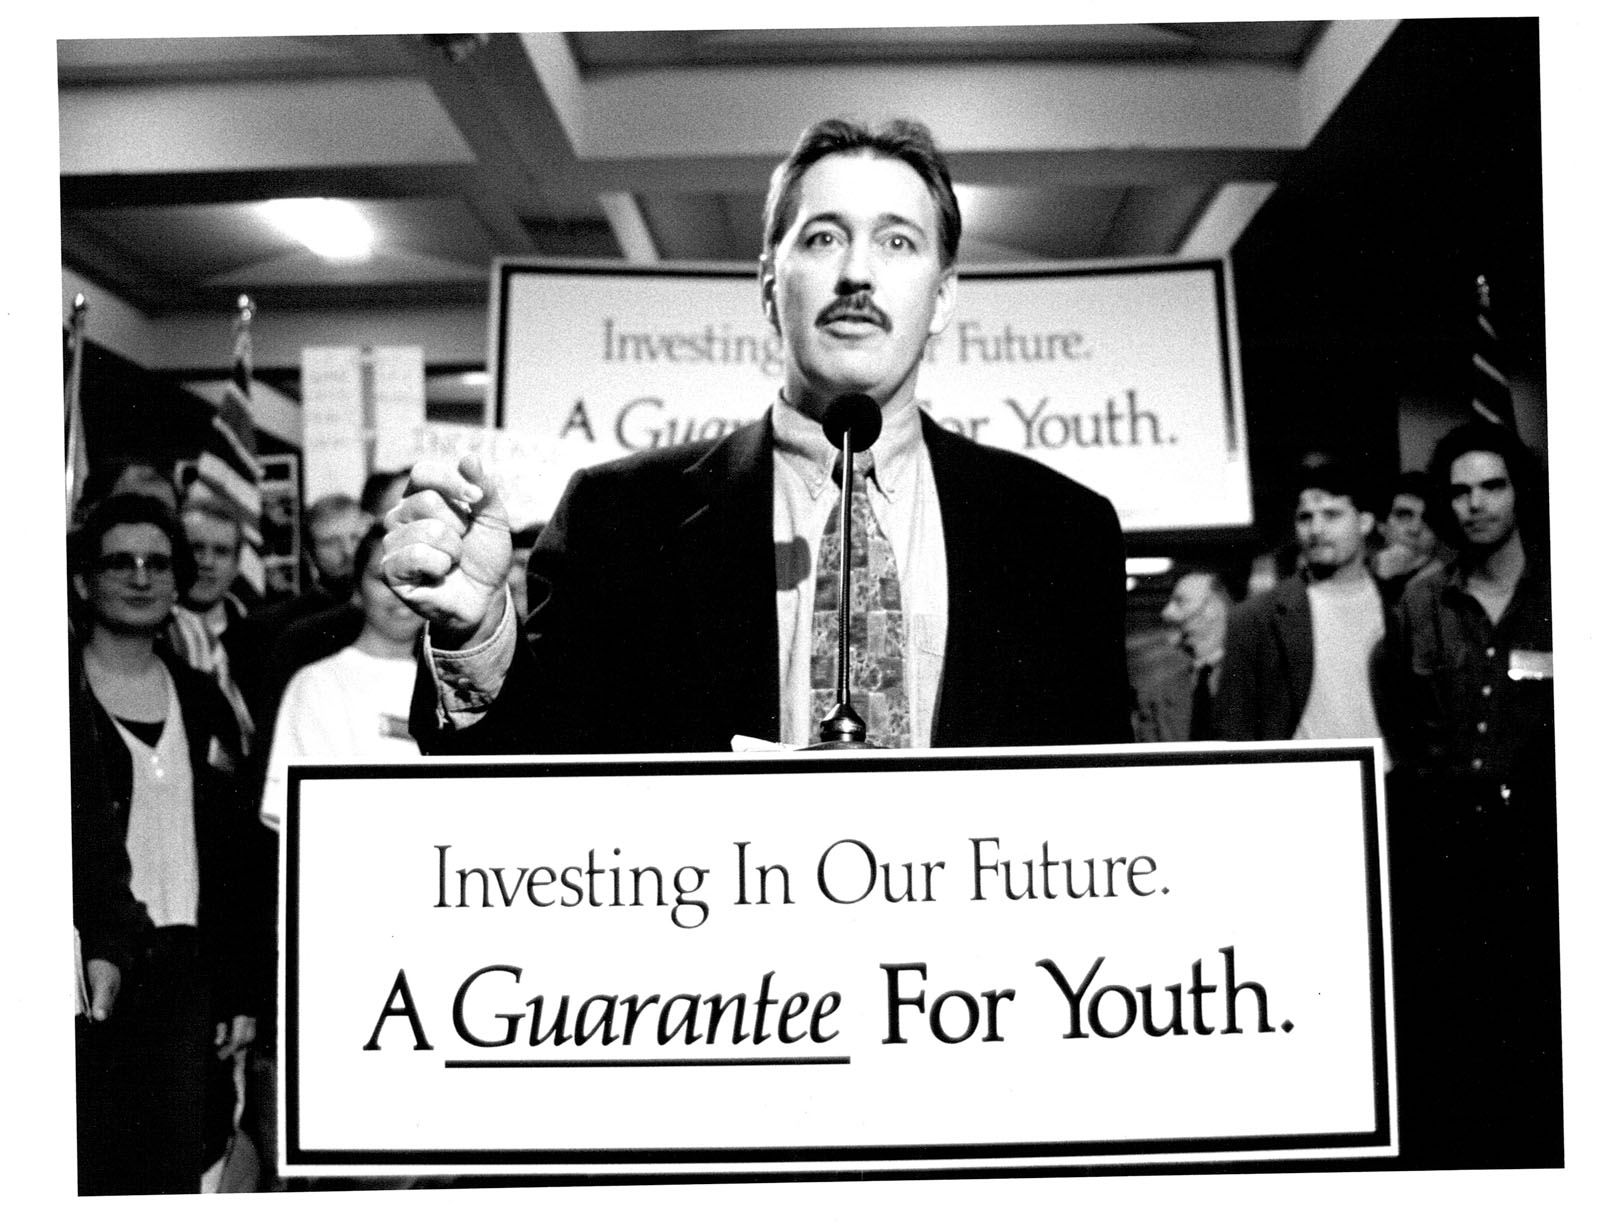 Glen Clark announcing first tuition freeze in March of 1996. International student tuition was raised almost immediately after the freeze was announced, marking the first time international and domestic tuition were differentiated at UBC.